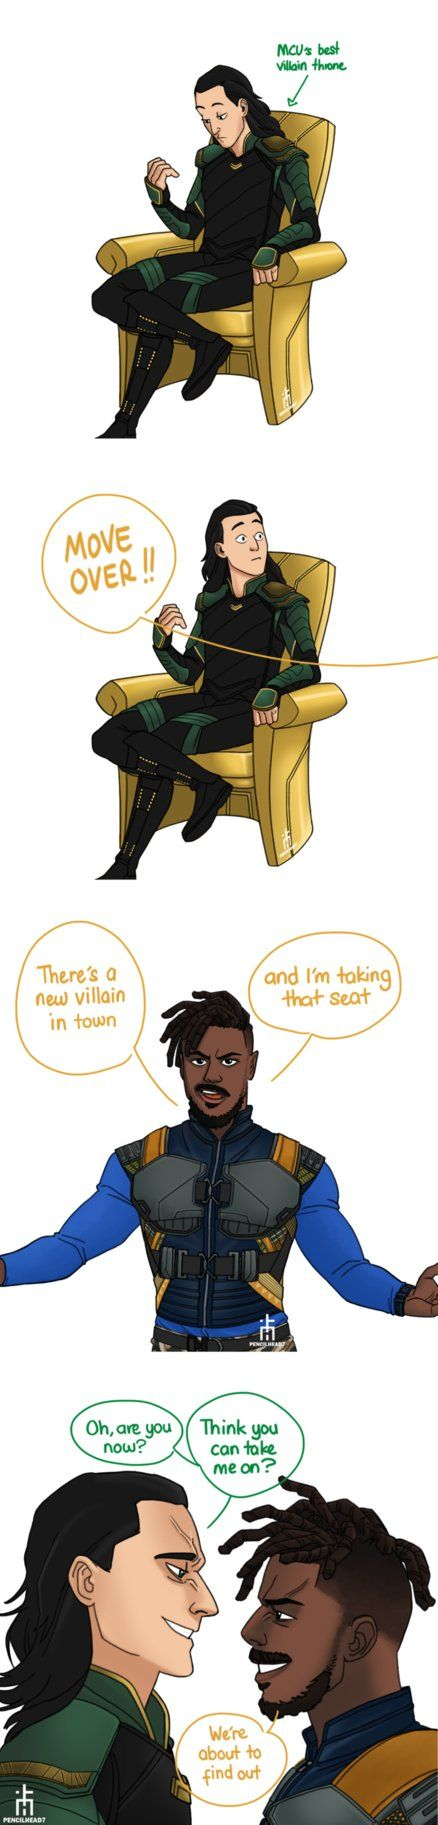 Best MCU Villain? by pencilHead7.deviantart.com on @DeviantArt<<<Erik Killmonger has my vote. Go N'jdaka!